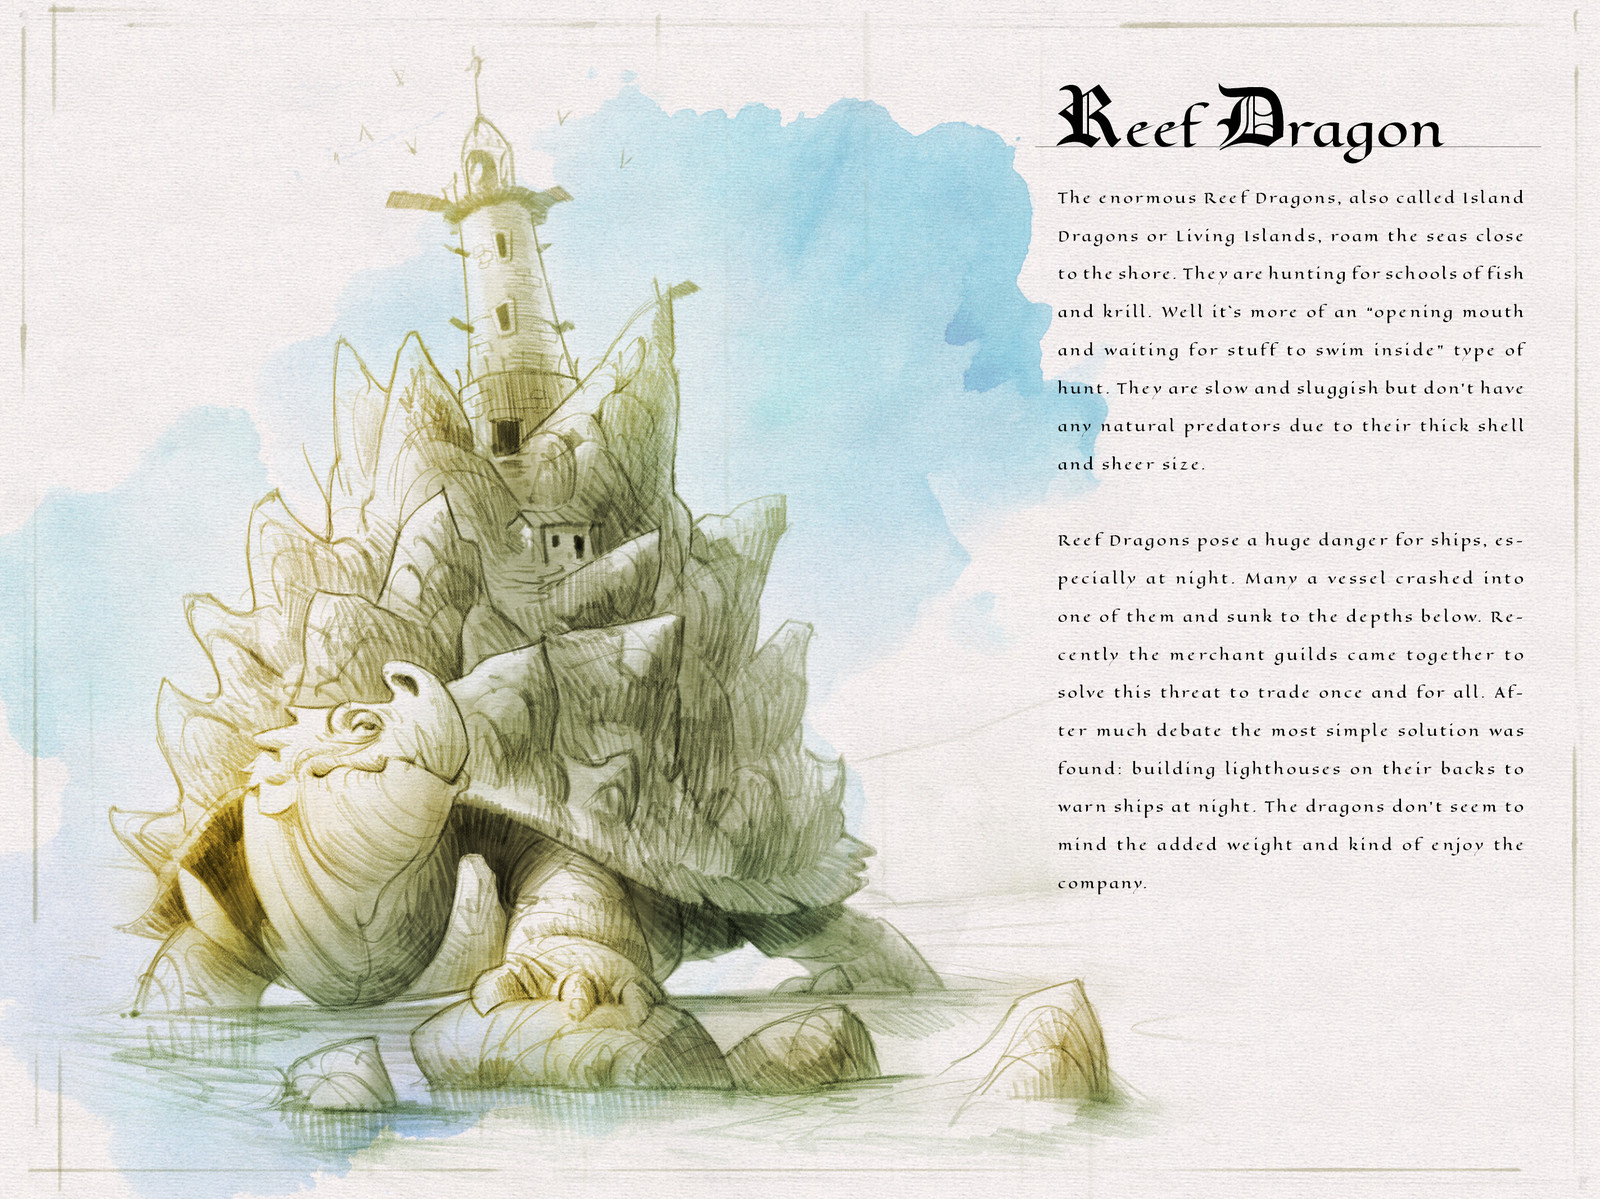 Page one of the  Dragon Compendium showing and describing the Reef Dragon